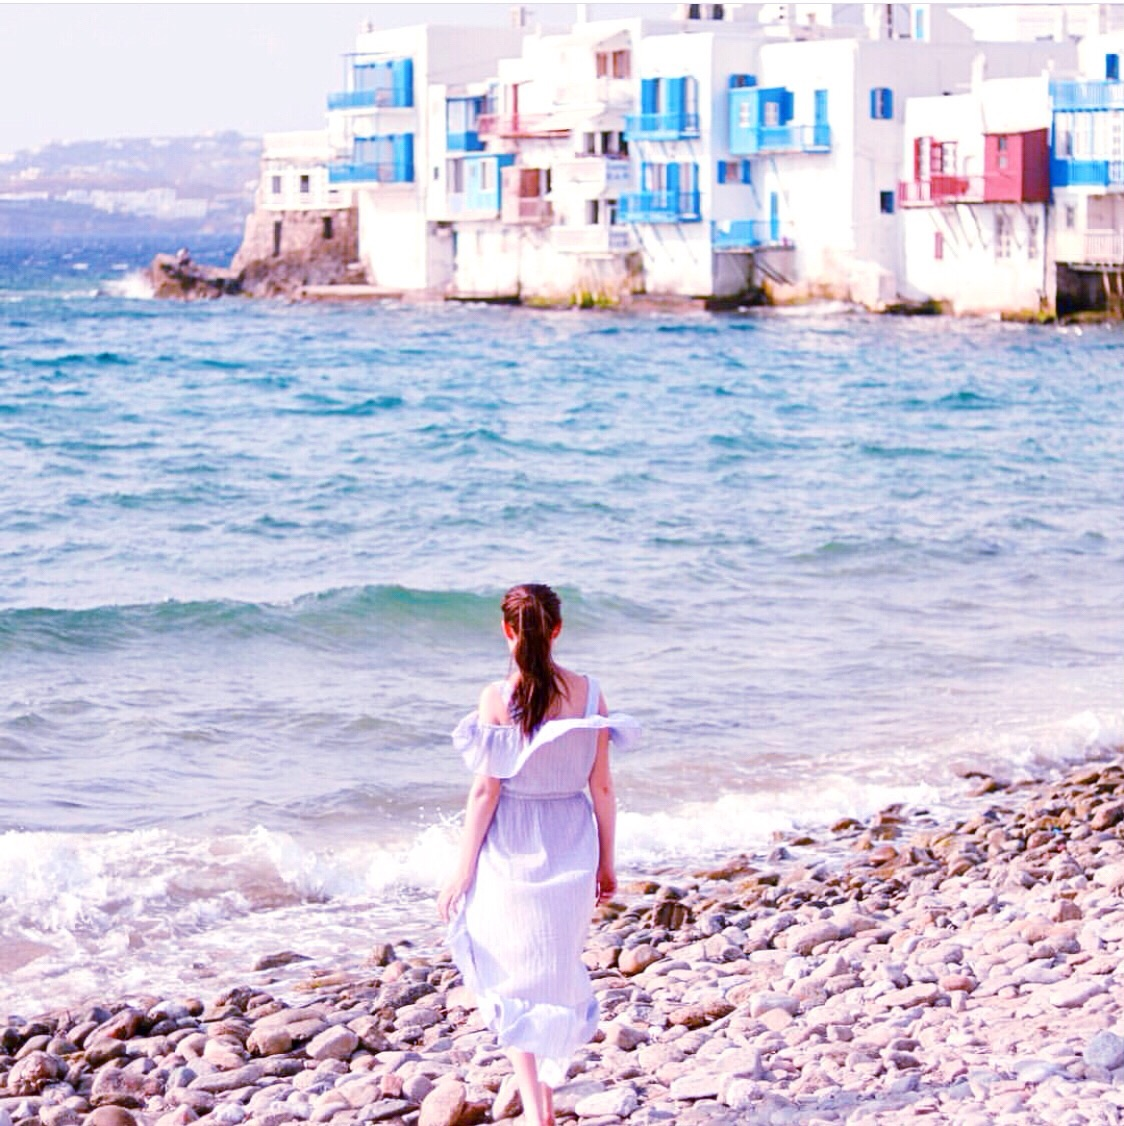 Mykonos Greece: What to wear, eat, & hotels to stay, mykonos greece, mykonos greece fashion, mykonos style, mykonos greece travel guide, mykonos greece hotels, things to do in mykonos, mykonos what to do in mykonos